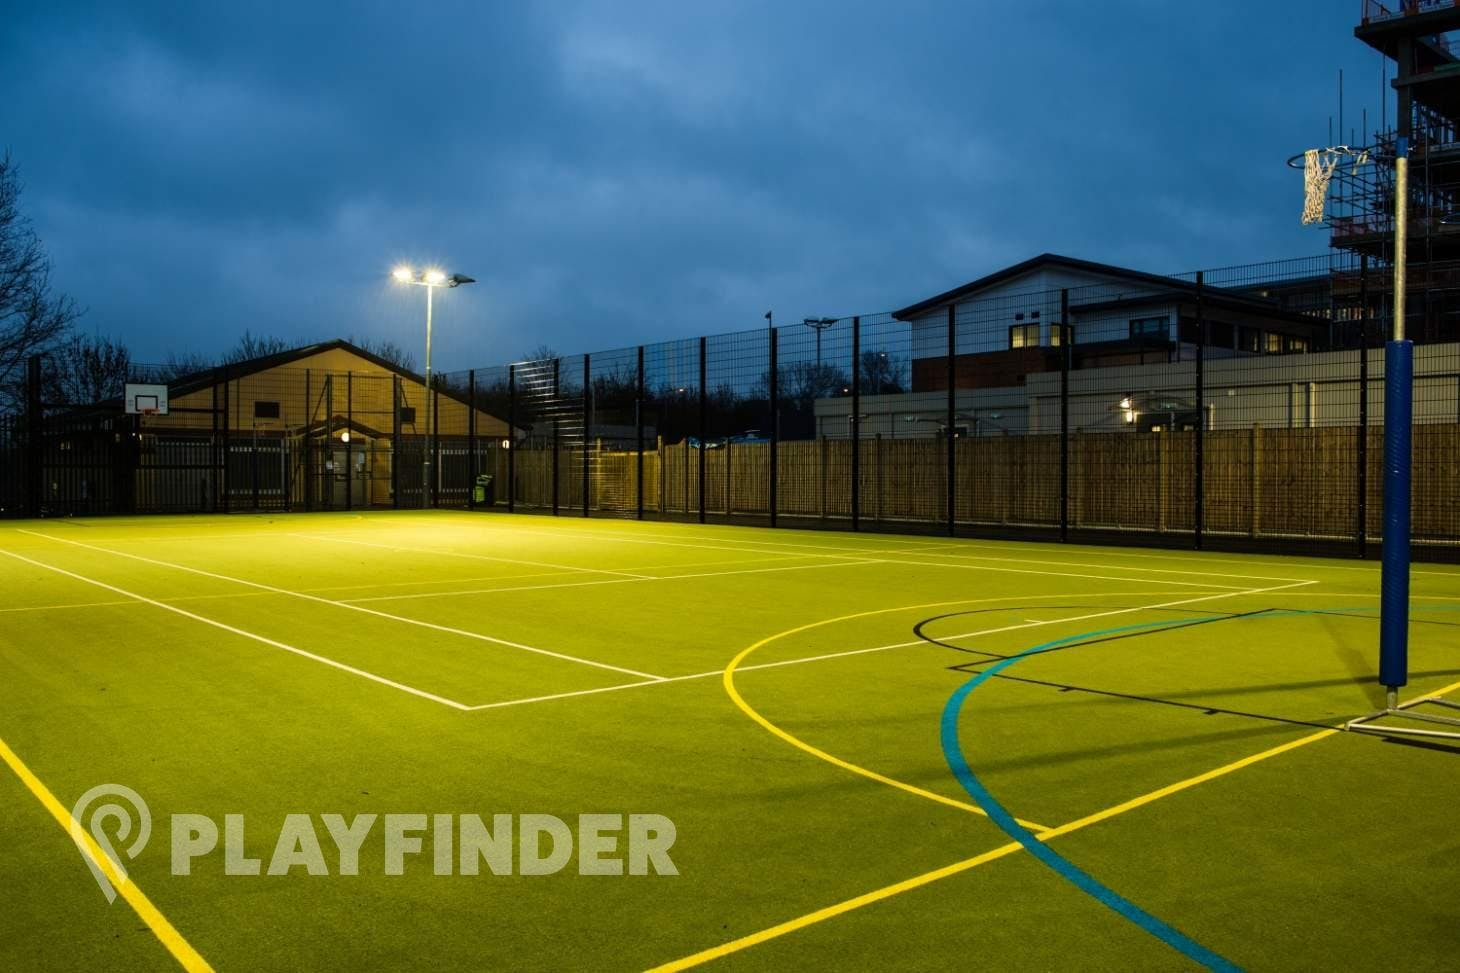 Middlesex University Sports Pitches 5 a side | Astroturf football pitch